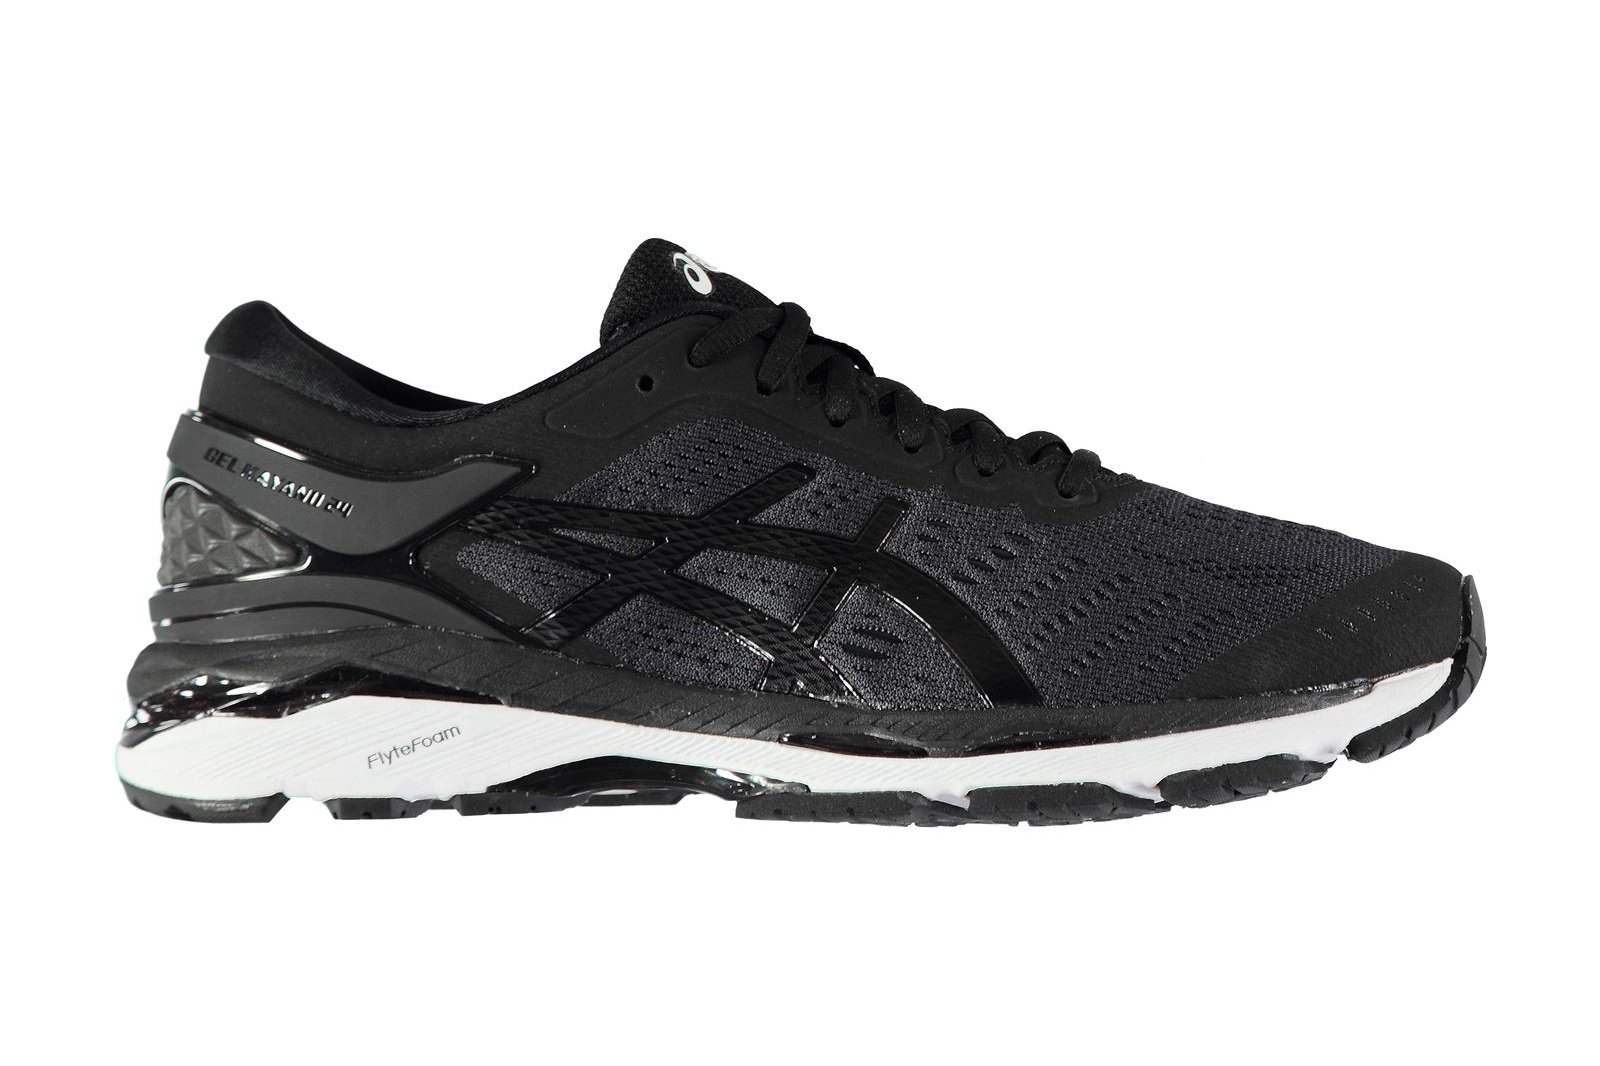 Kayano 24 Mens Running Shoes